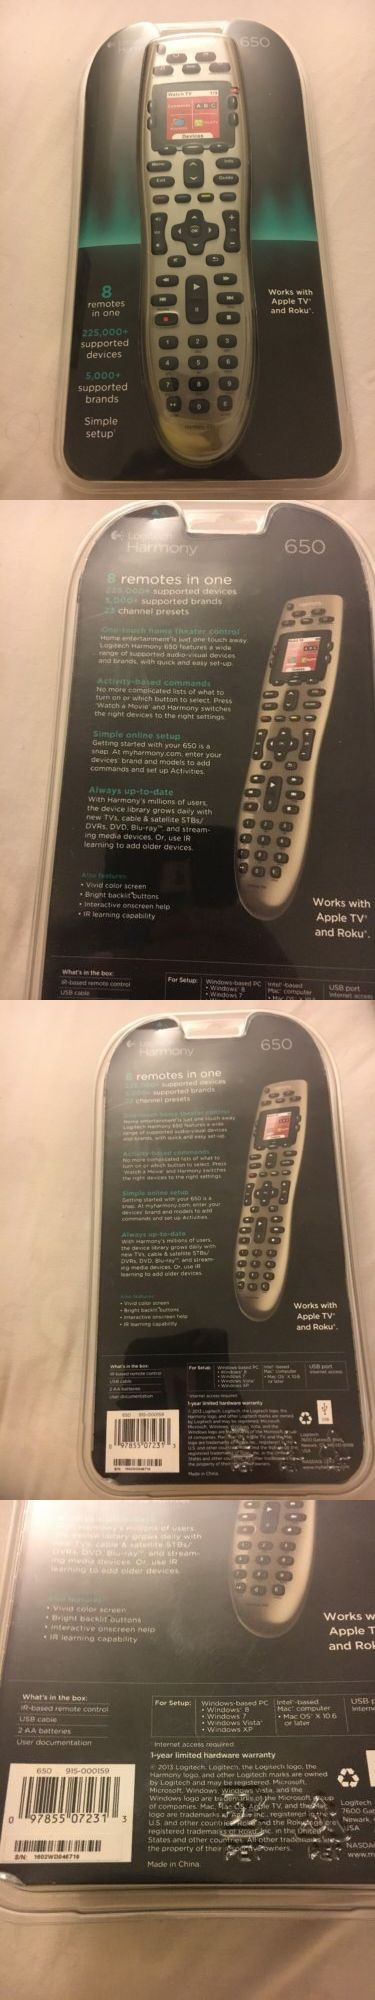 Remote Controls: * New In Box * Logitech Harmony 650 Advanced Universal Remote Control 915-000159 BUY IT NOW ONLY: $56.56